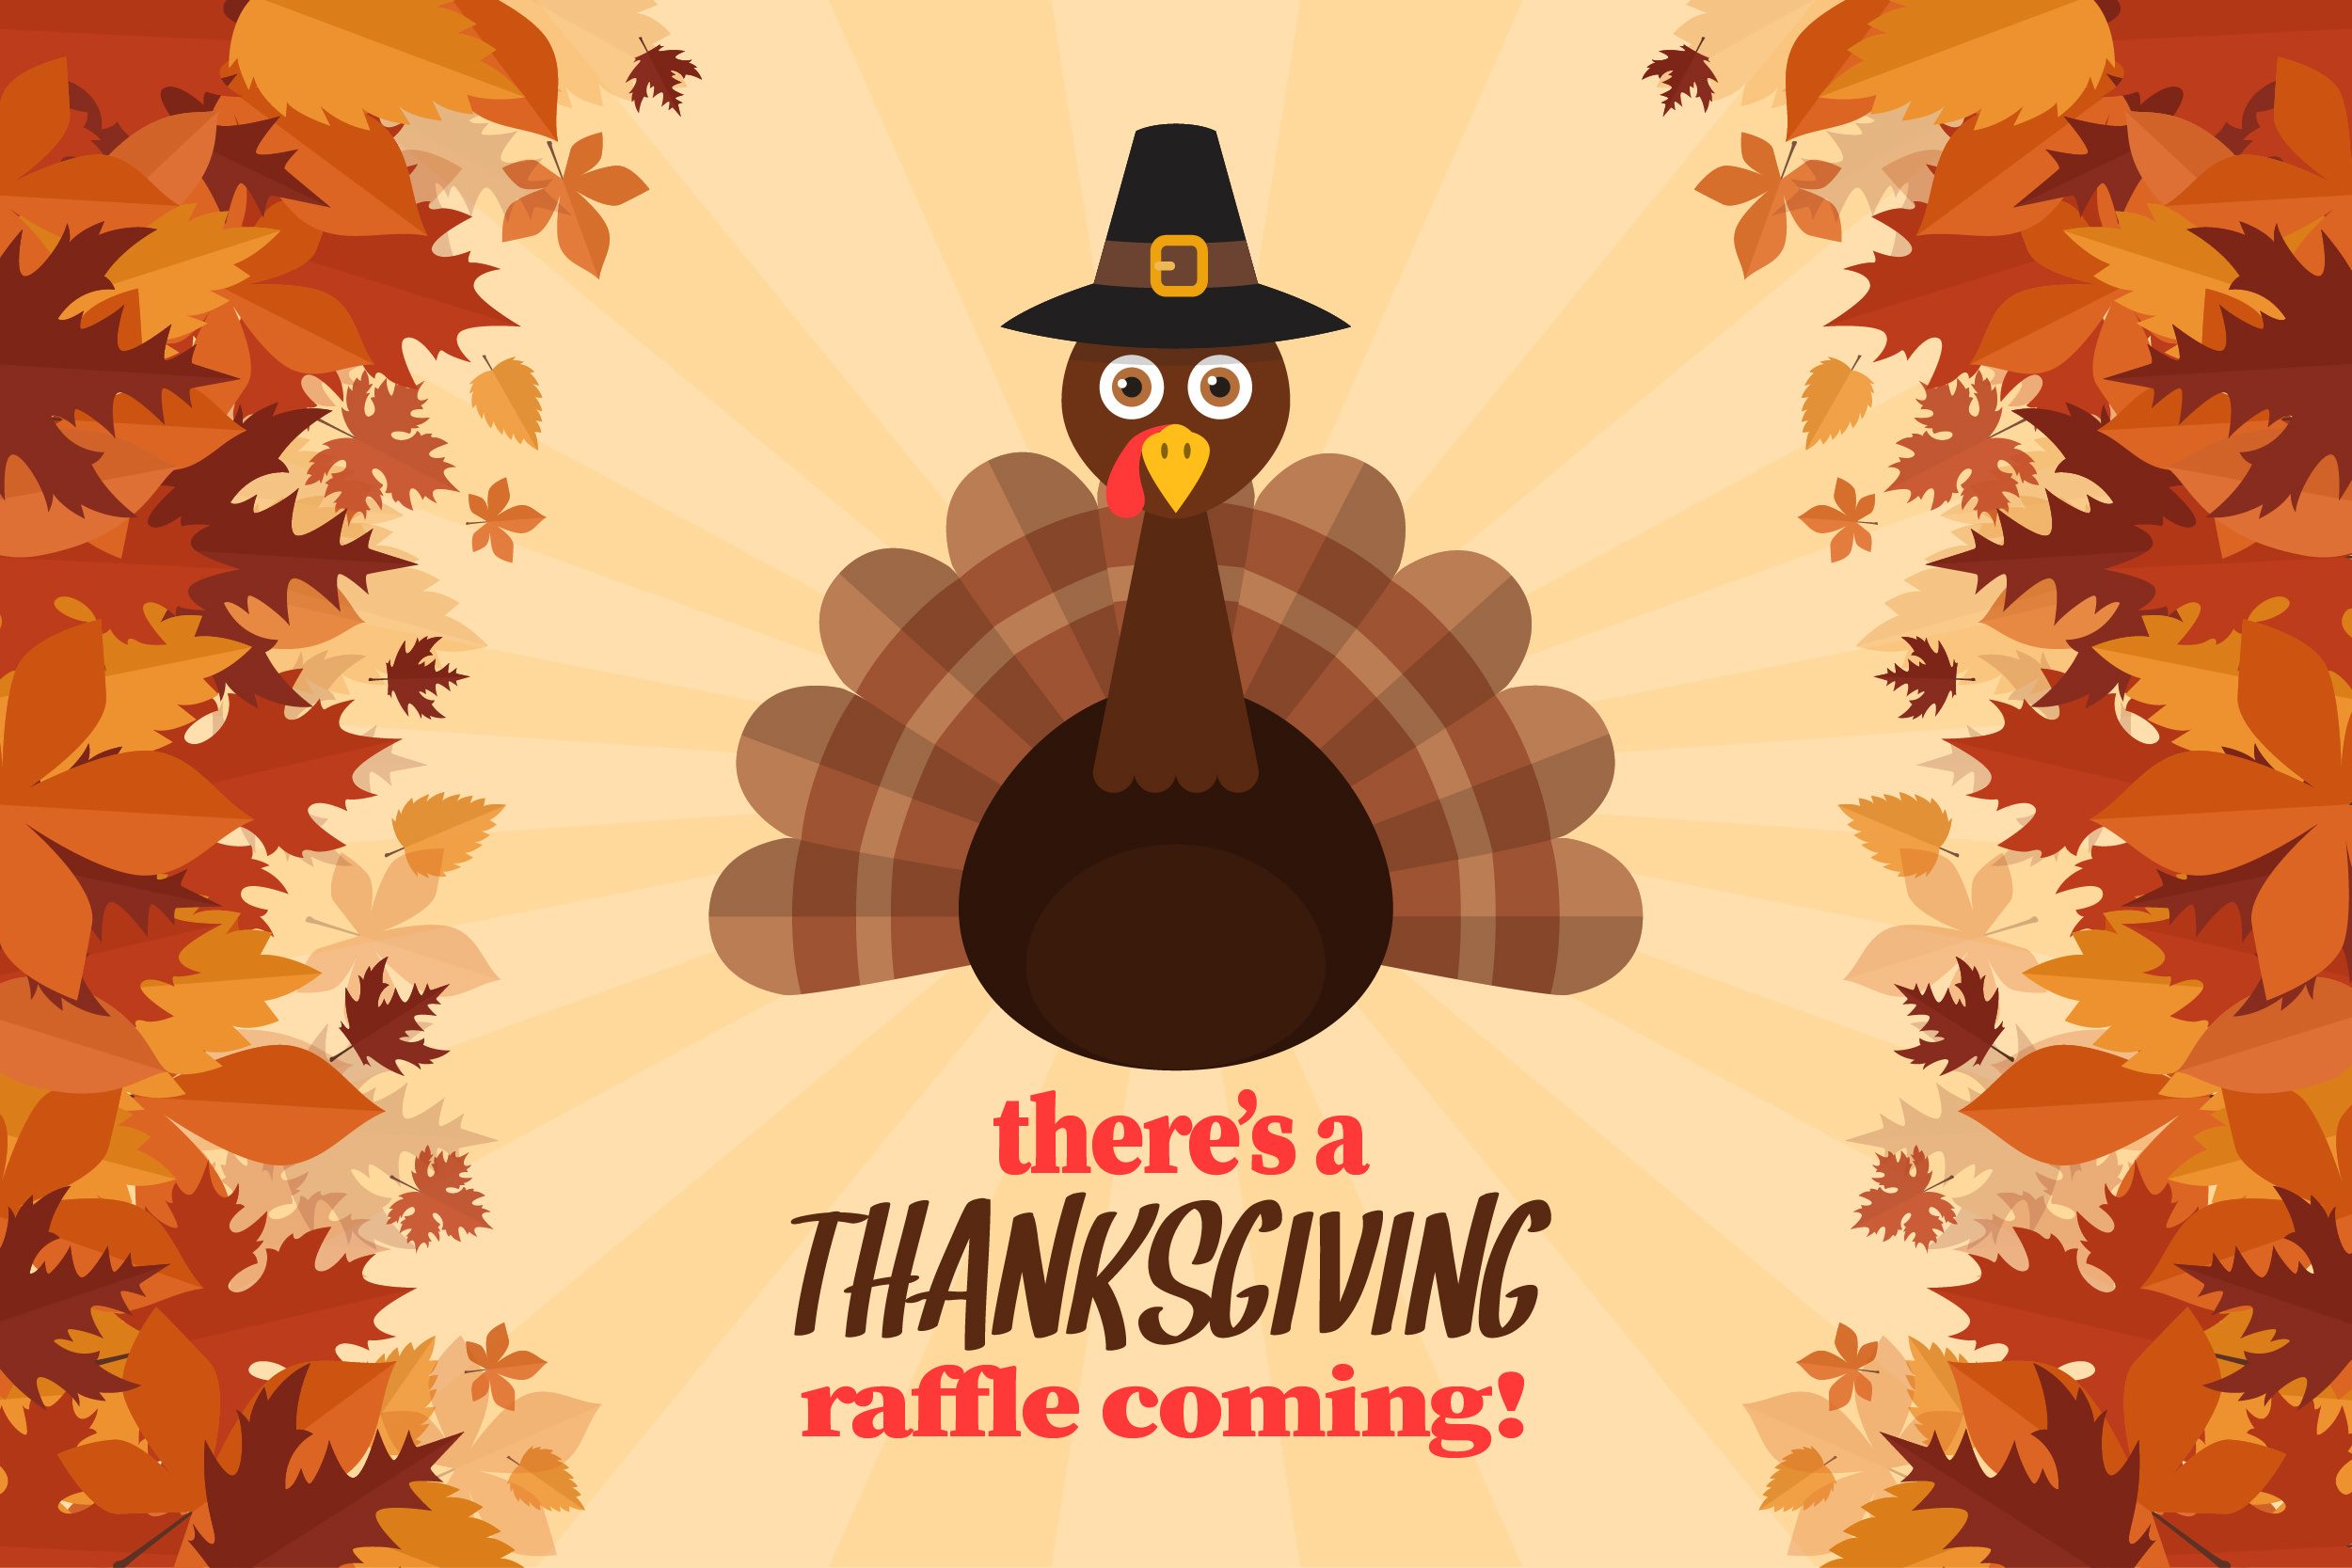 thanksgiving raffle